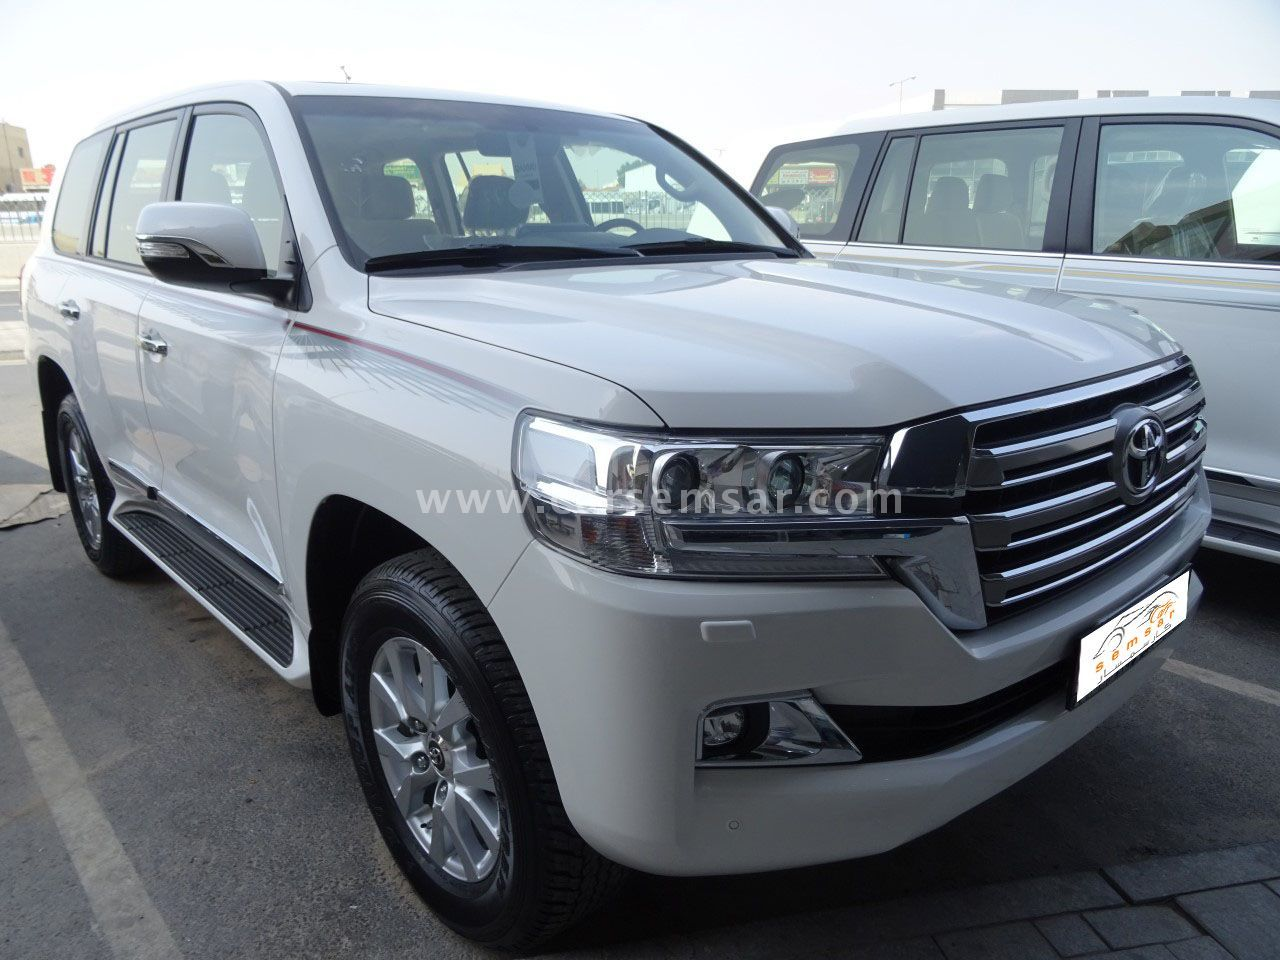 7 Passenger Suv List >> 2019 Toyota Land Cruiser GXR V8 for sale in Qatar - New ...